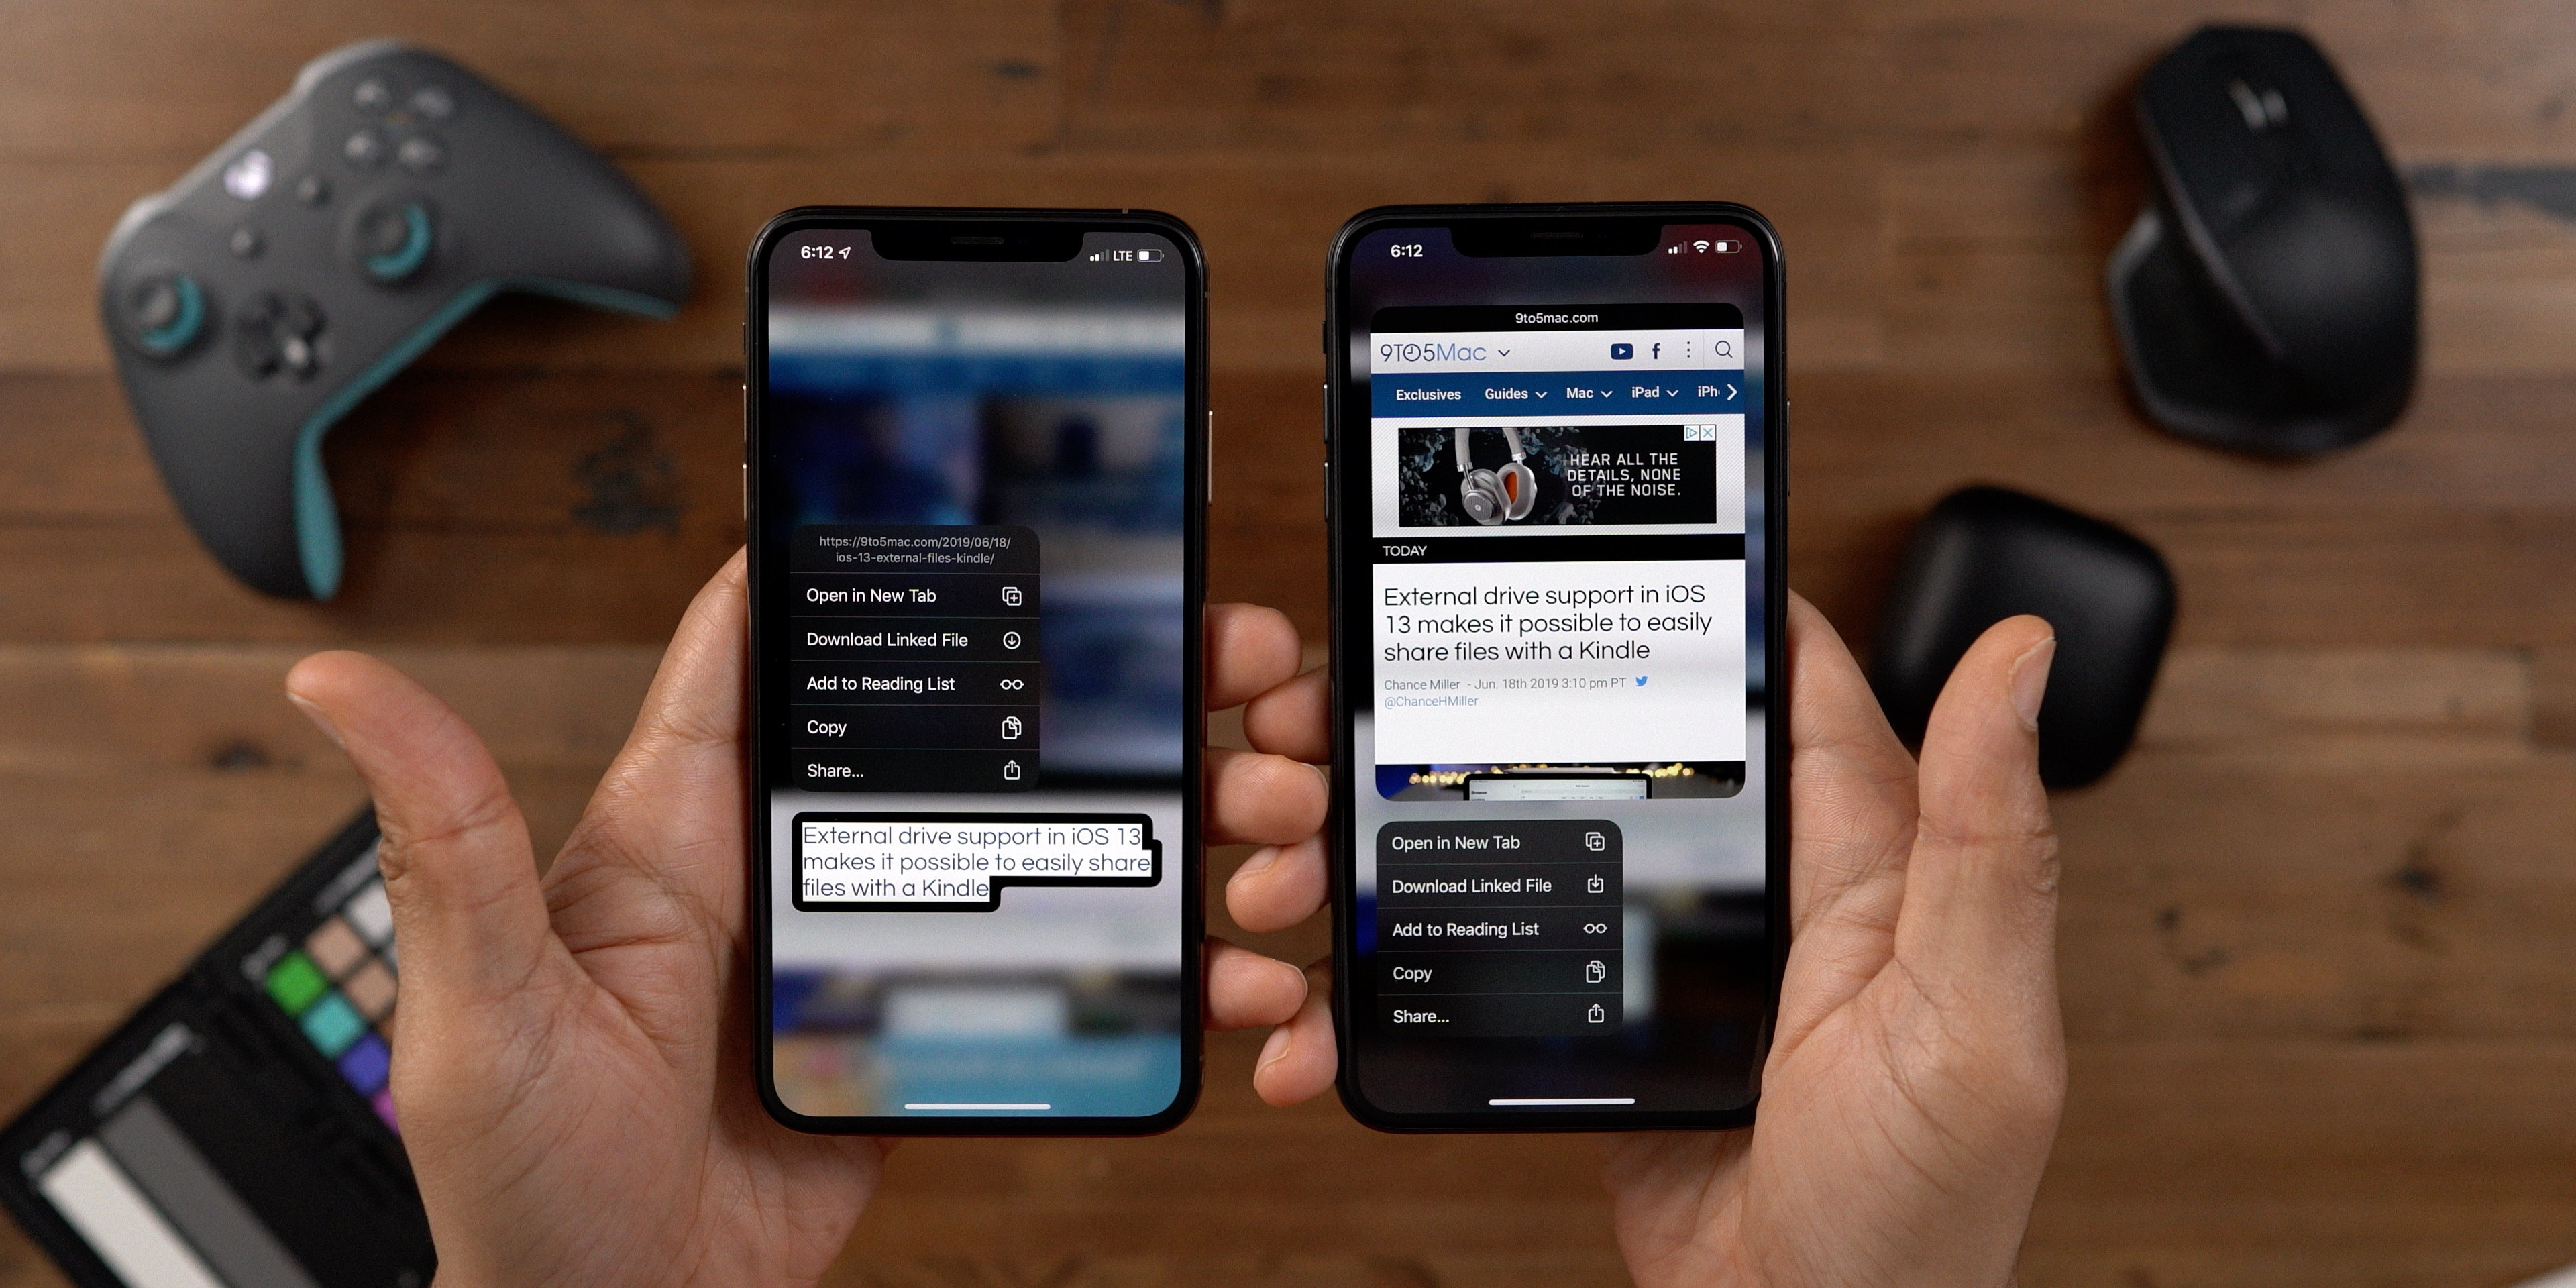 Hands-on with iOS 13 beta 2 new changes and features [Video] - 9to5Mac